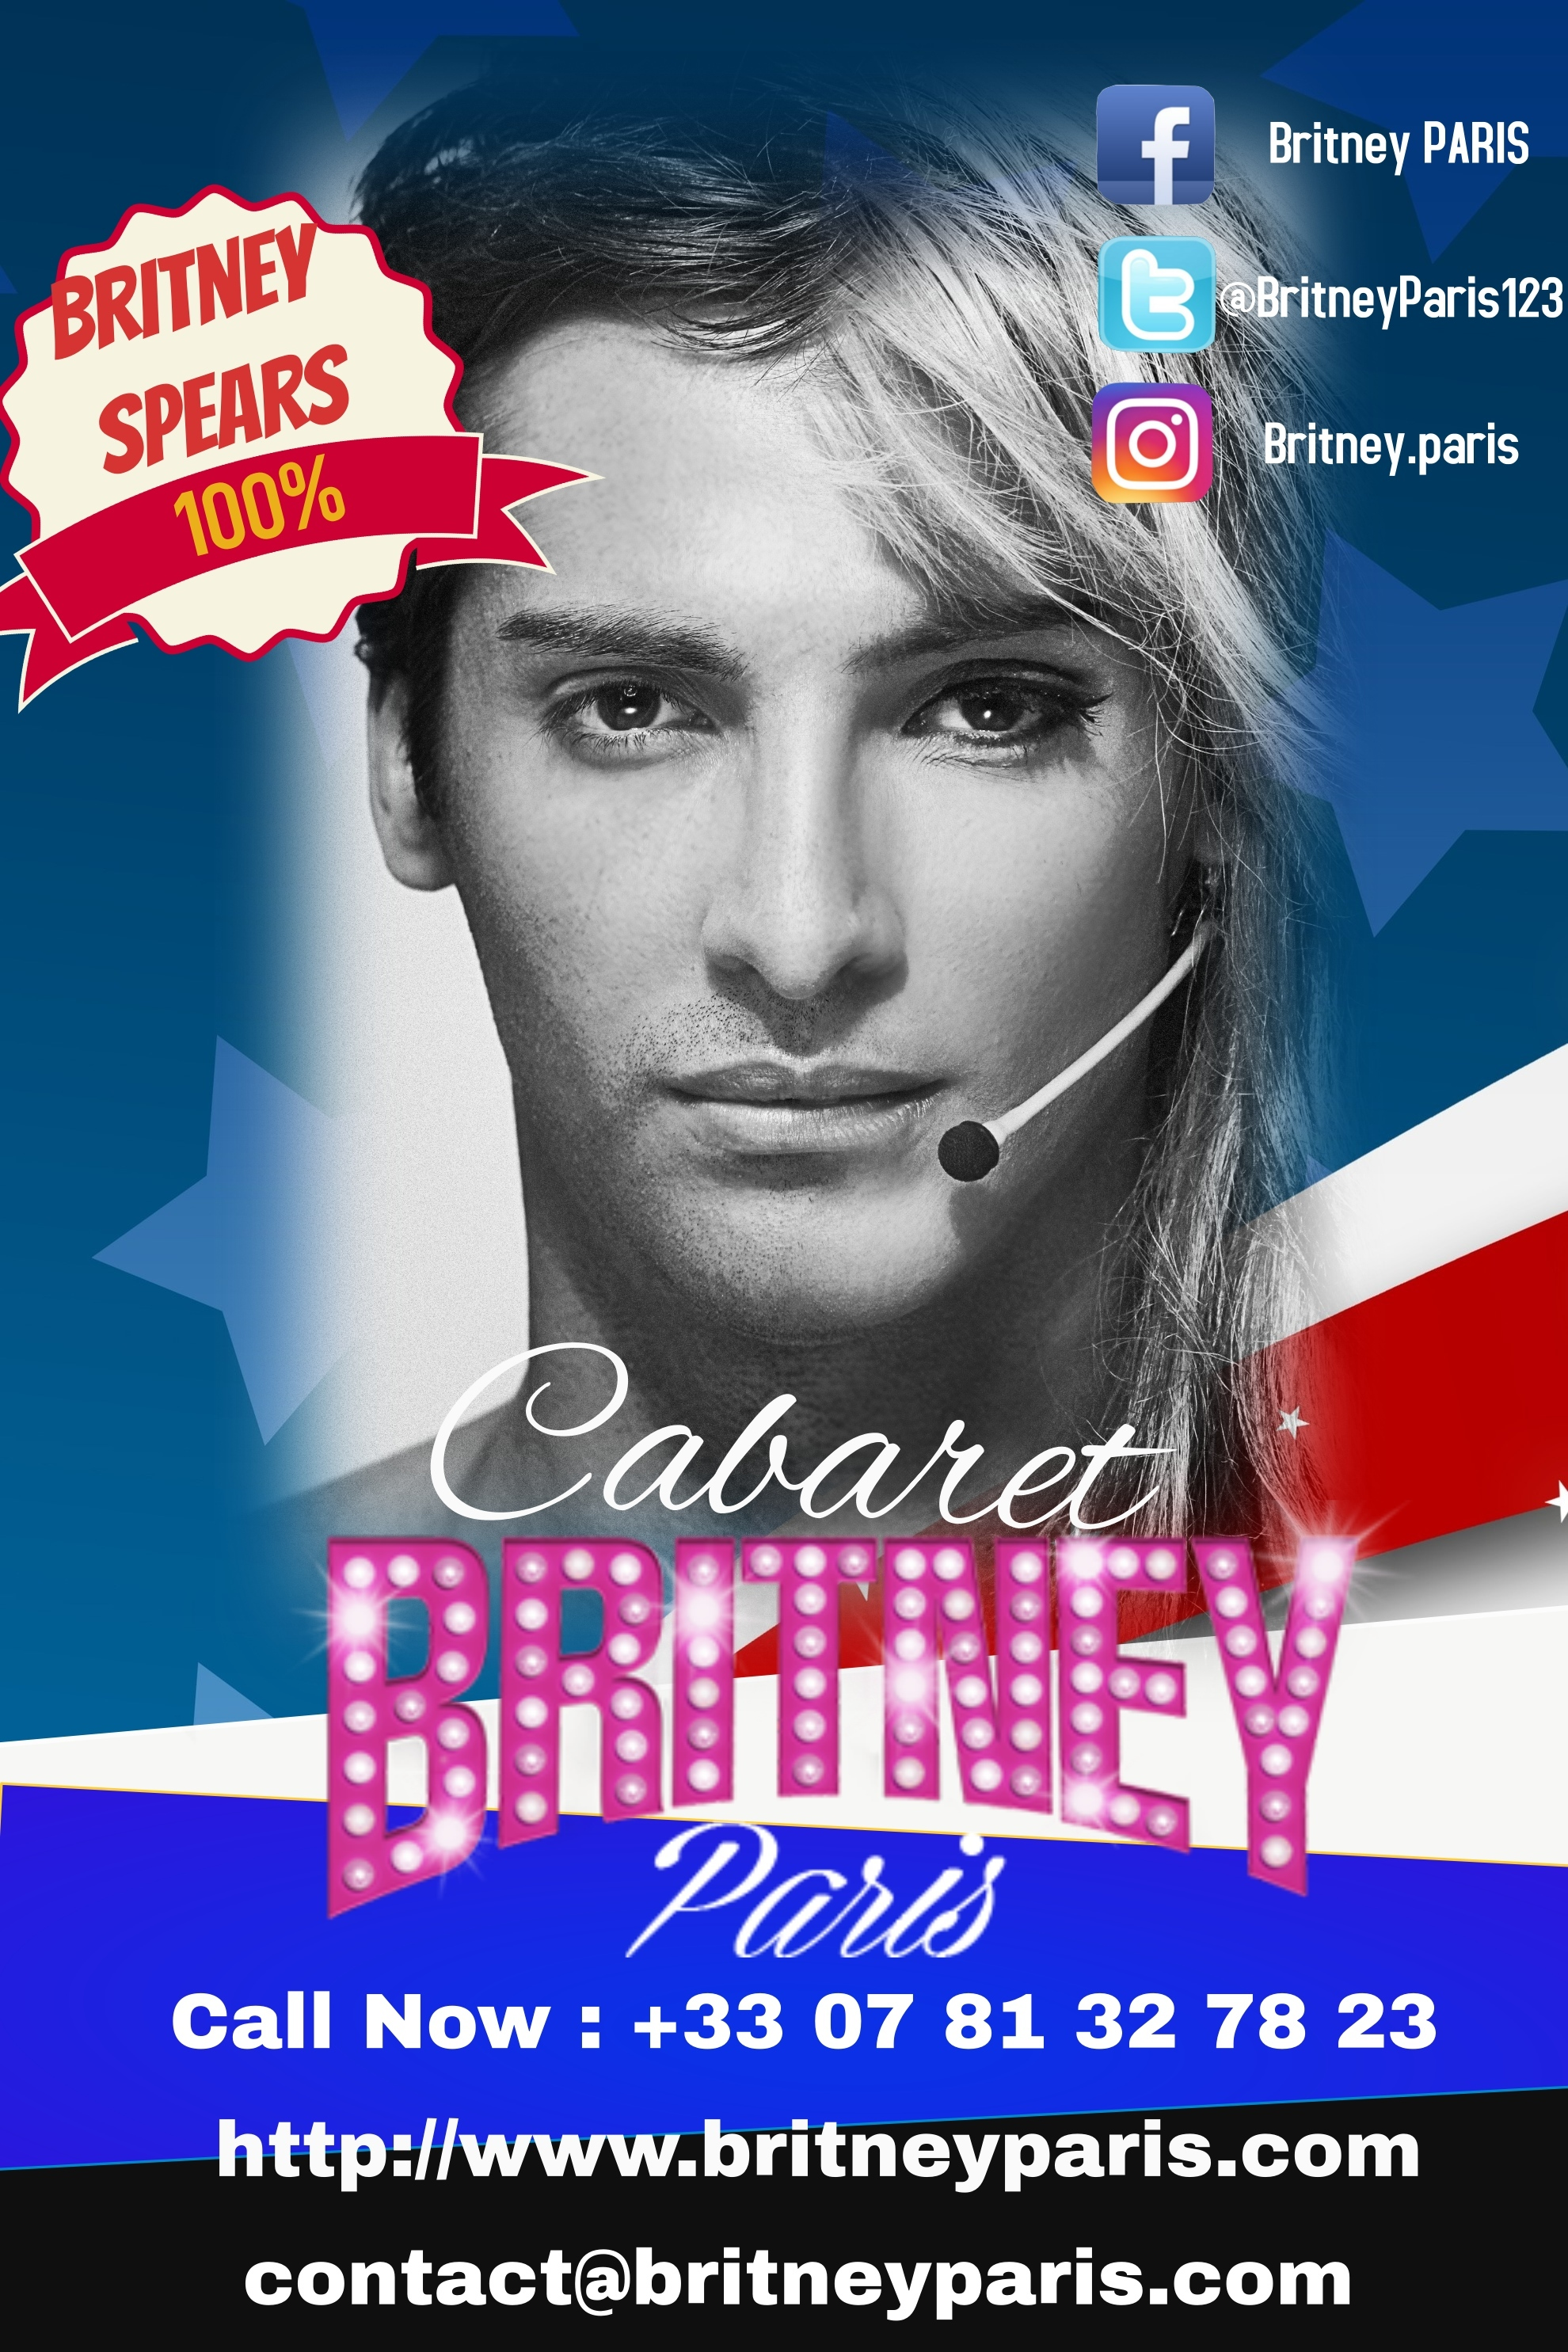 britney-paris